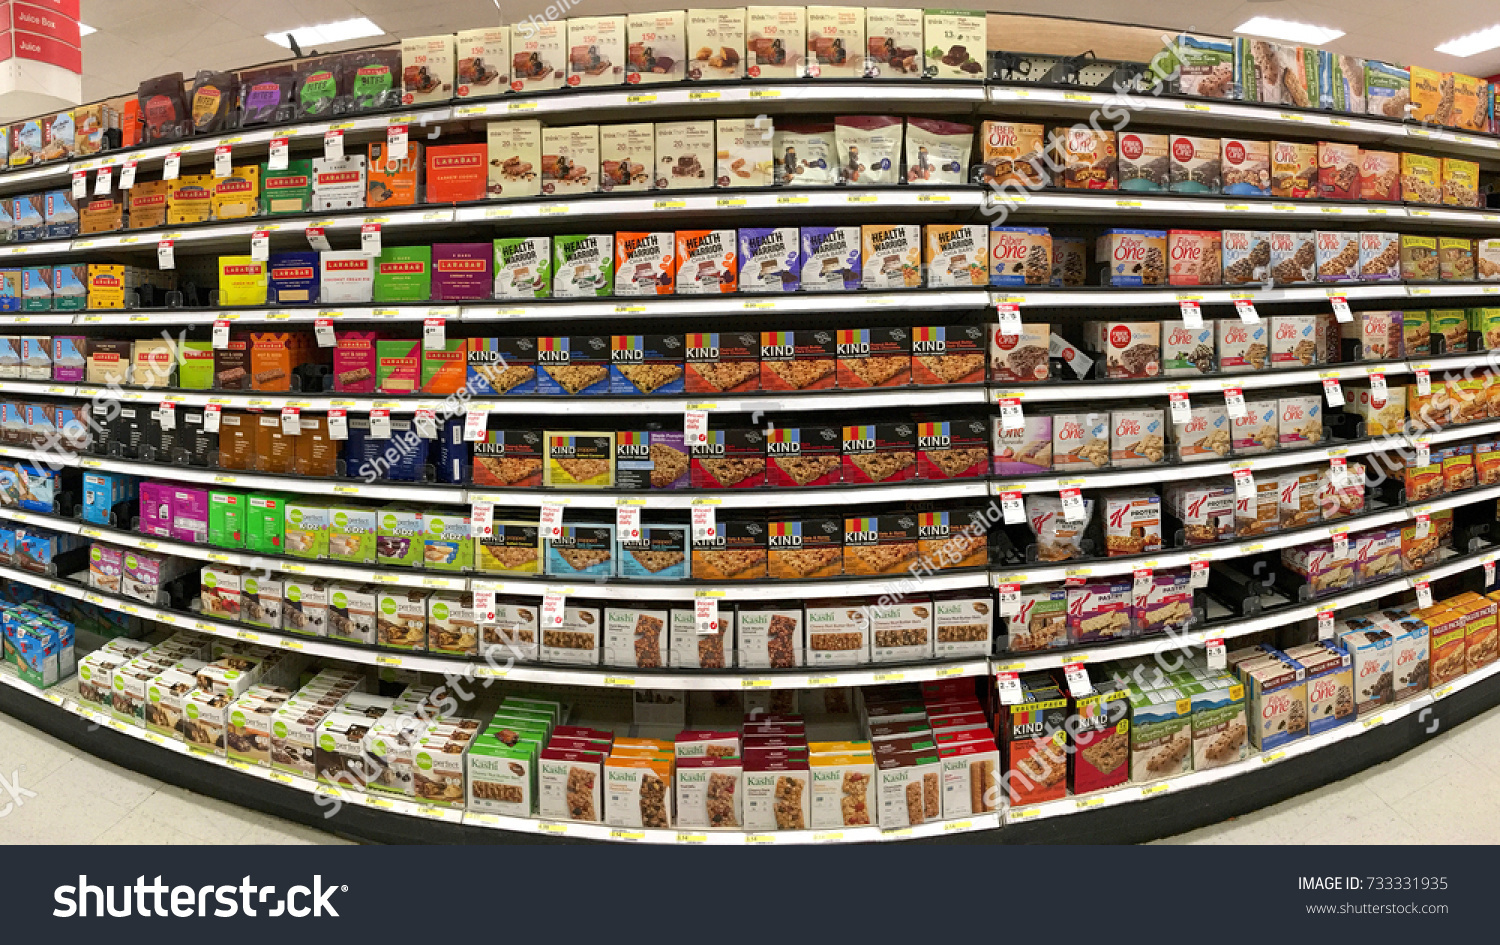 stock-photo-san-leandro-ca-october-grocery-store-shelf-with-boxes-of-breakfast-and-health-food-733331935.jpg